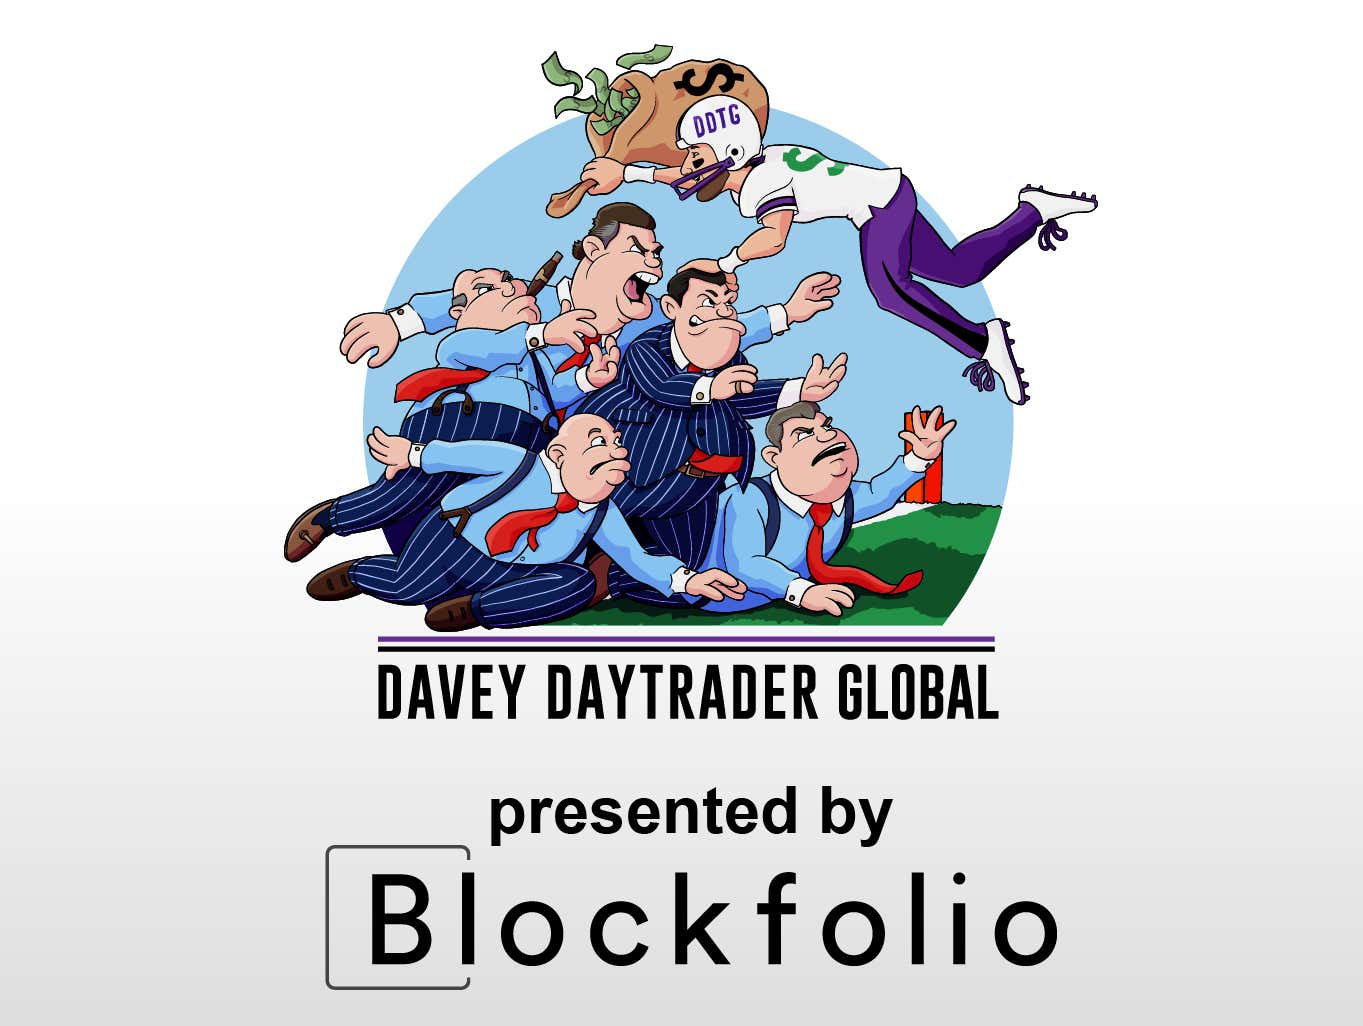 Davey Day Trader presented by Blockfolio - April 16, 2021